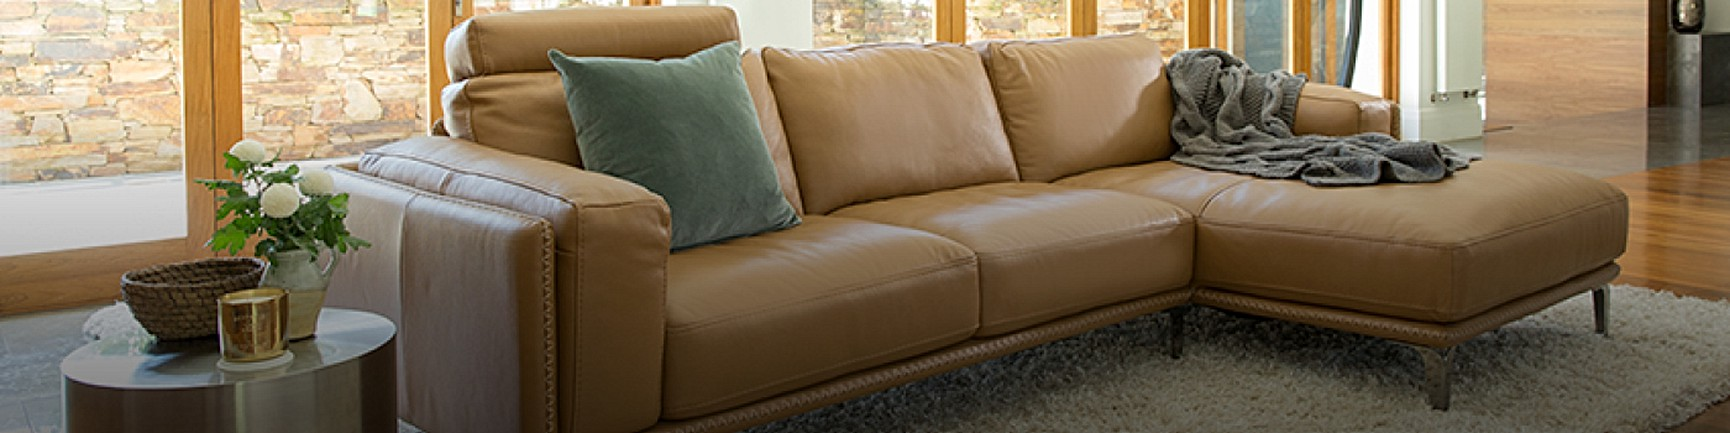 Why Choose Leather? Your Guide To Choosing A Leather Sofa